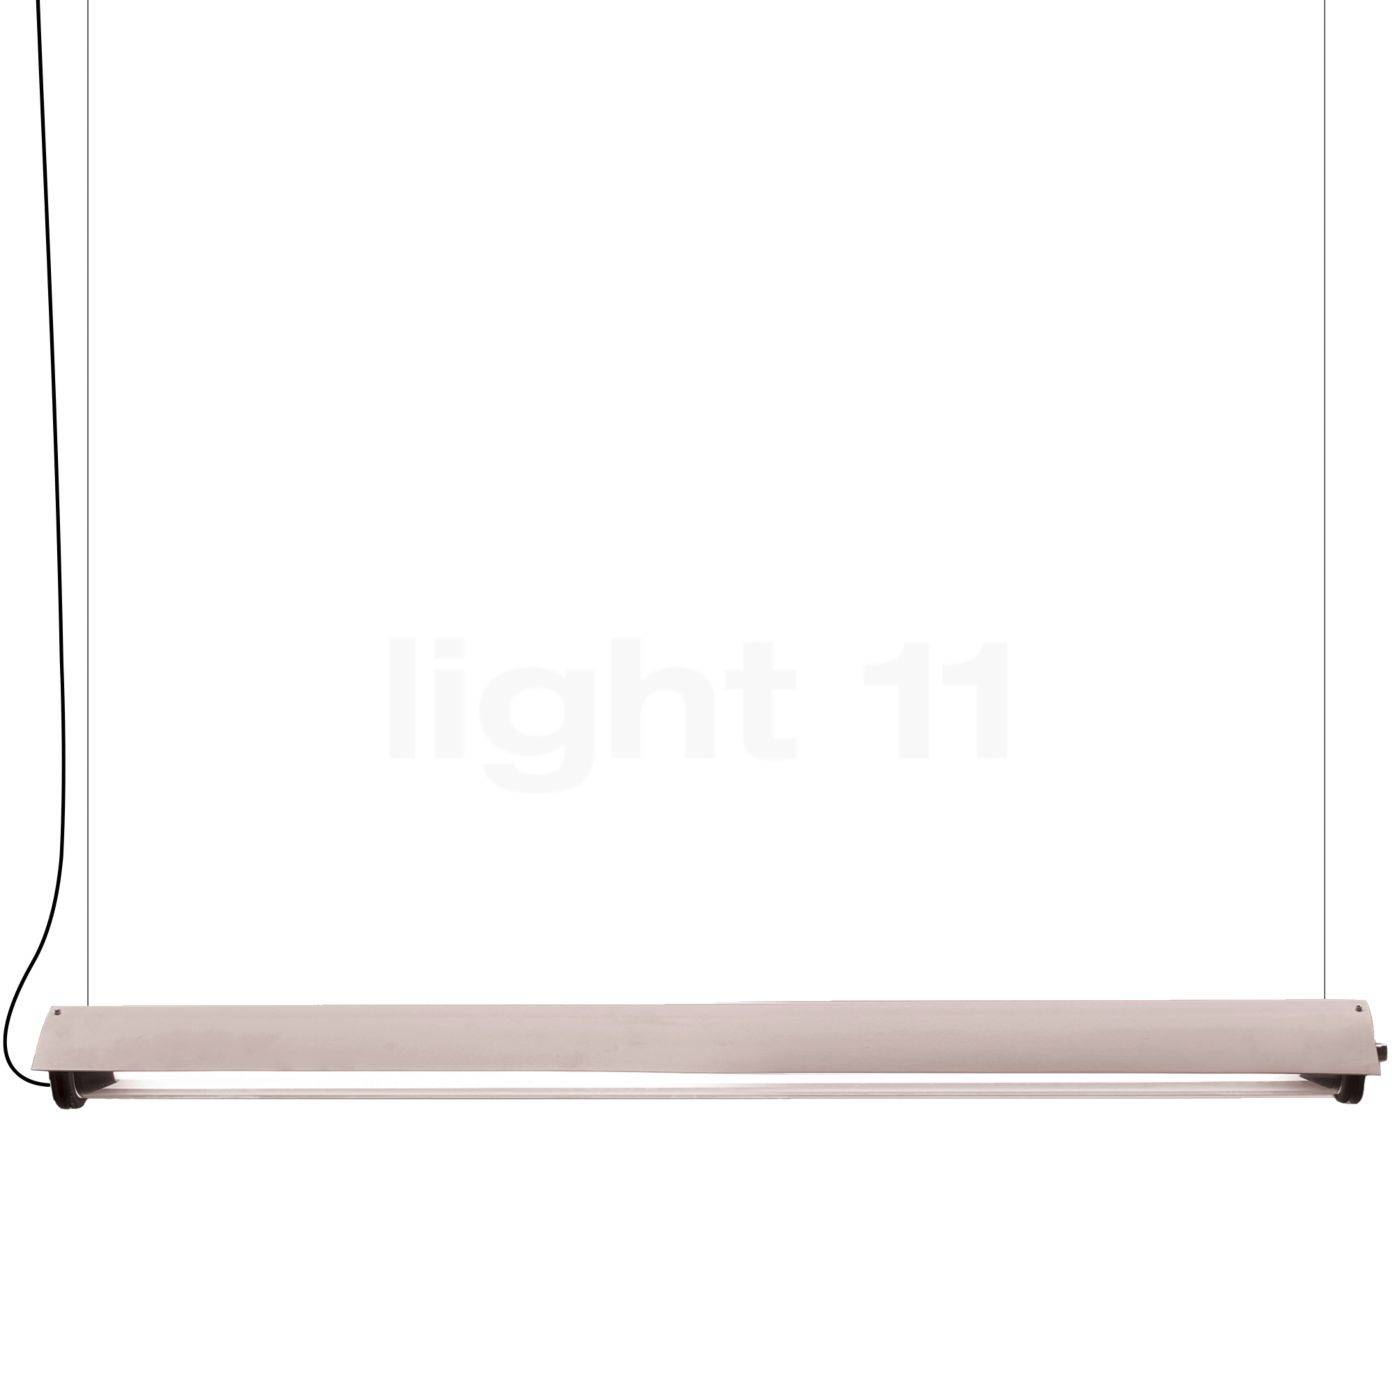 DCW In The Tube 360° - 1600 Suspension LED avec wing, ailette blanche/sans maille